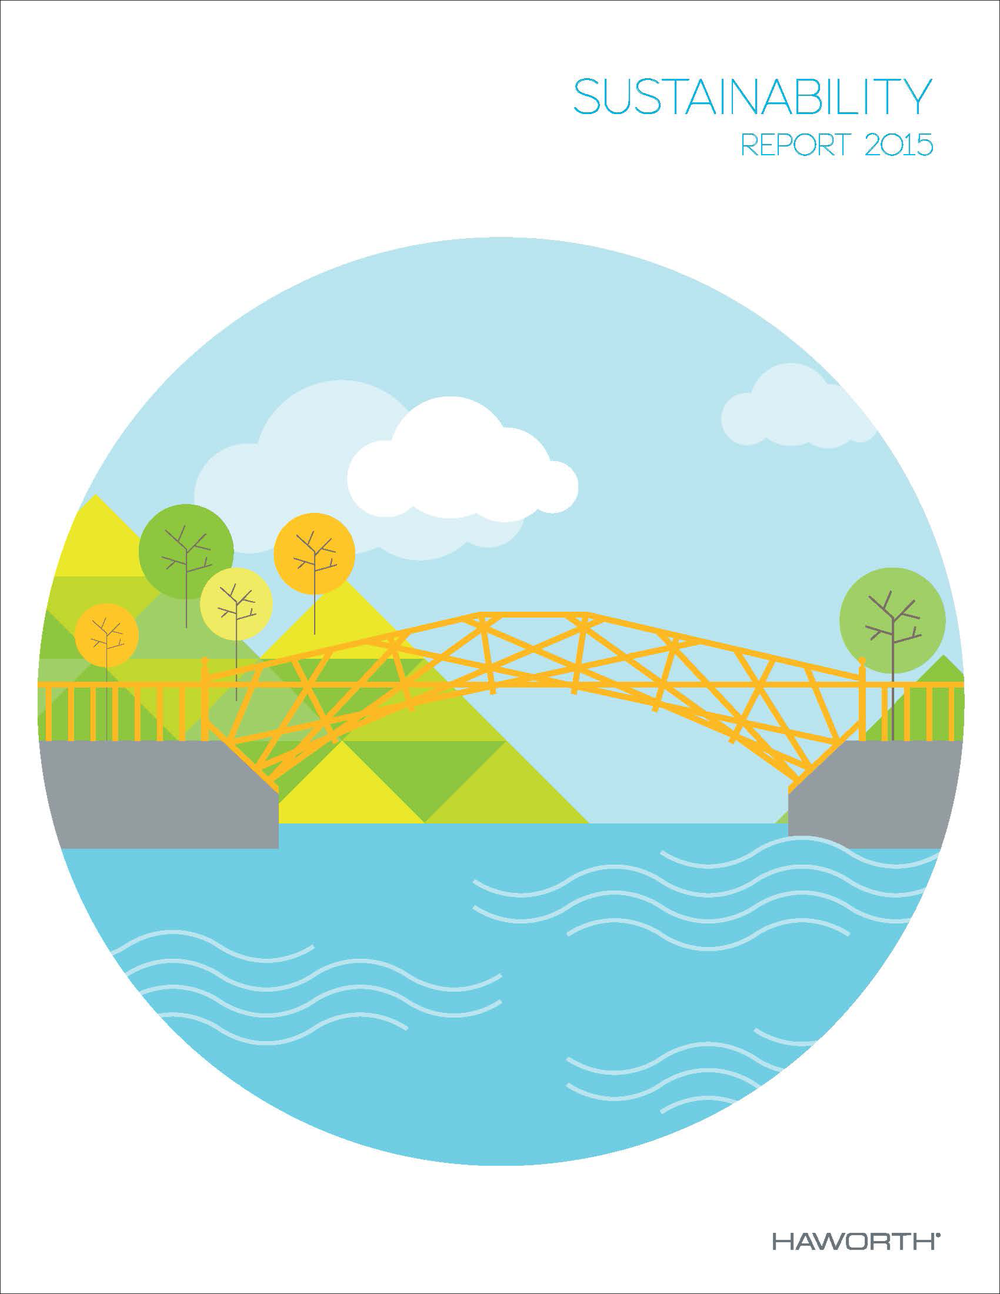 Haworth Sustainability Report 2015